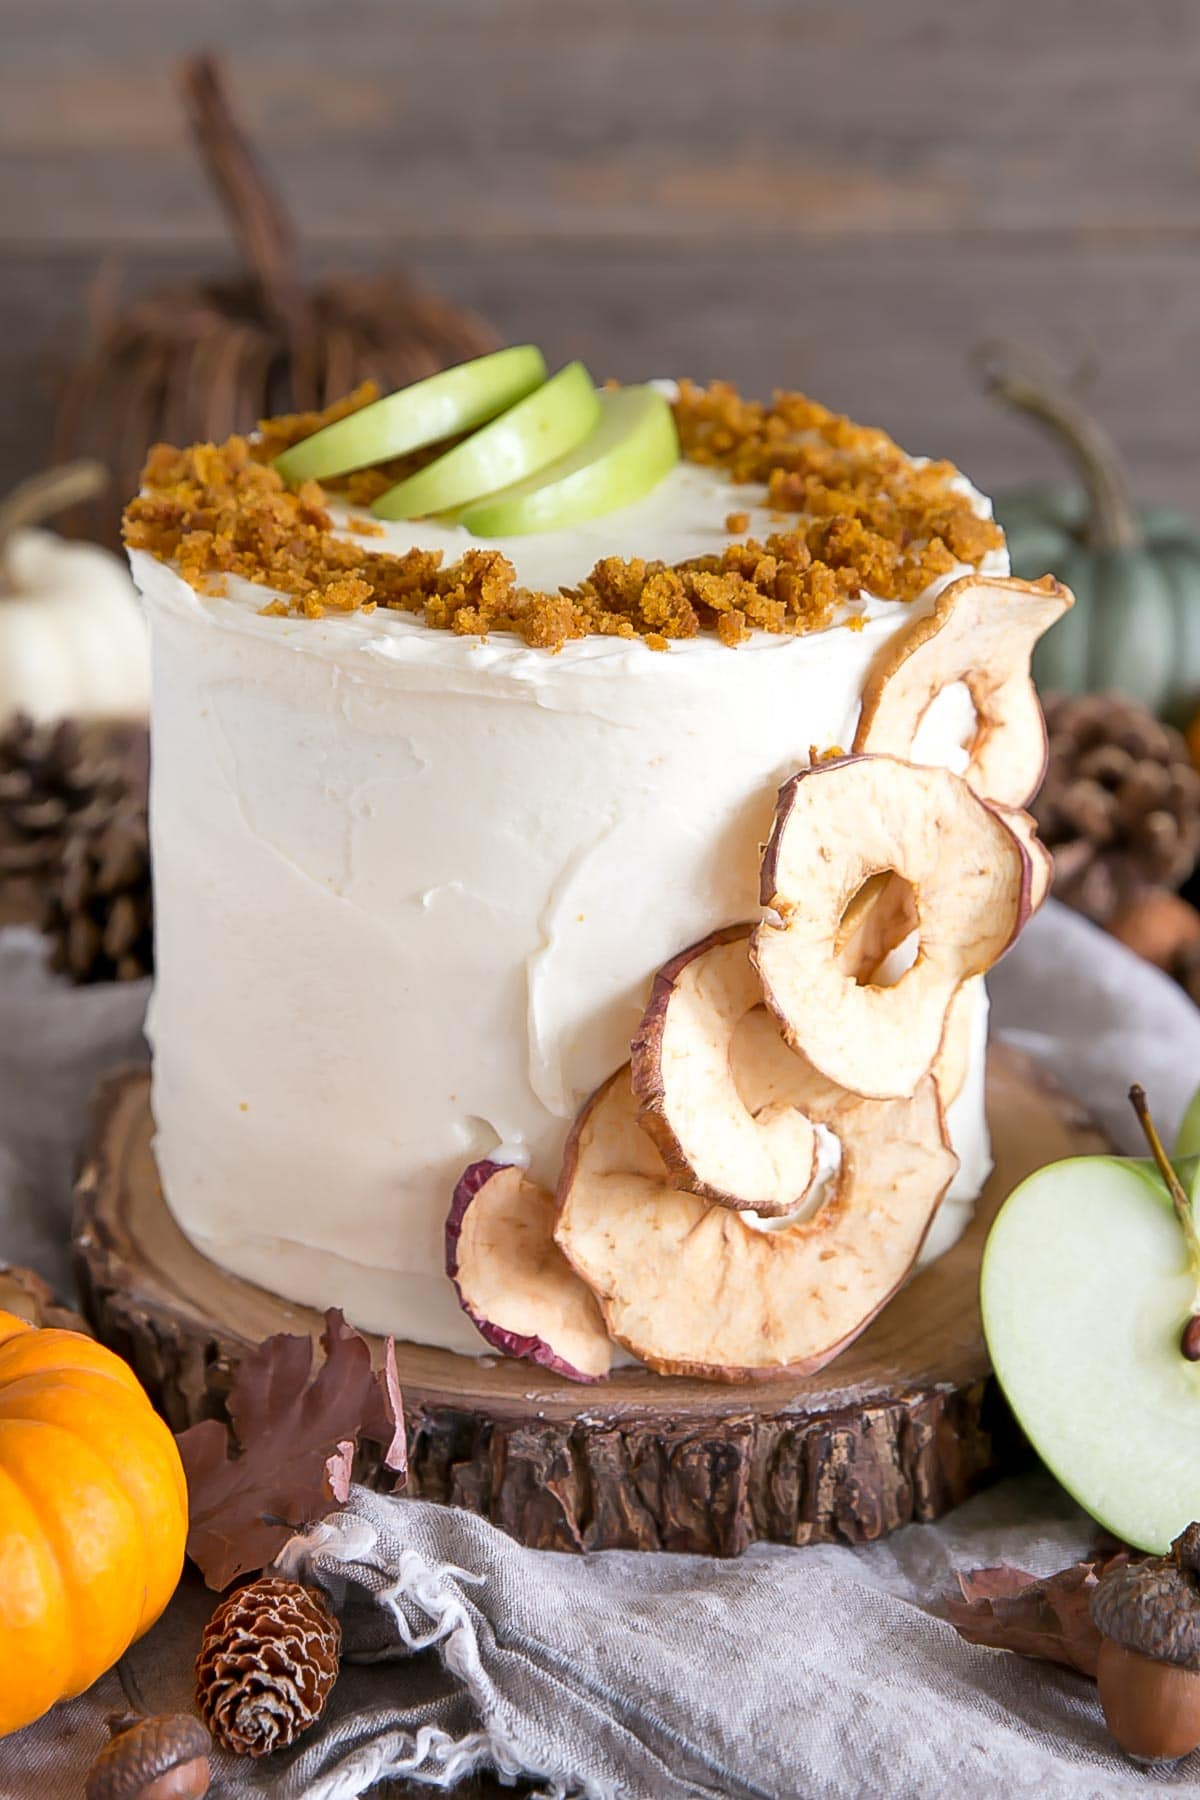 Pumpkin cake with apple pie filling frosted in a cream cheese frosting. Decorated with dried apple slices and pumpkin cake crumbs.